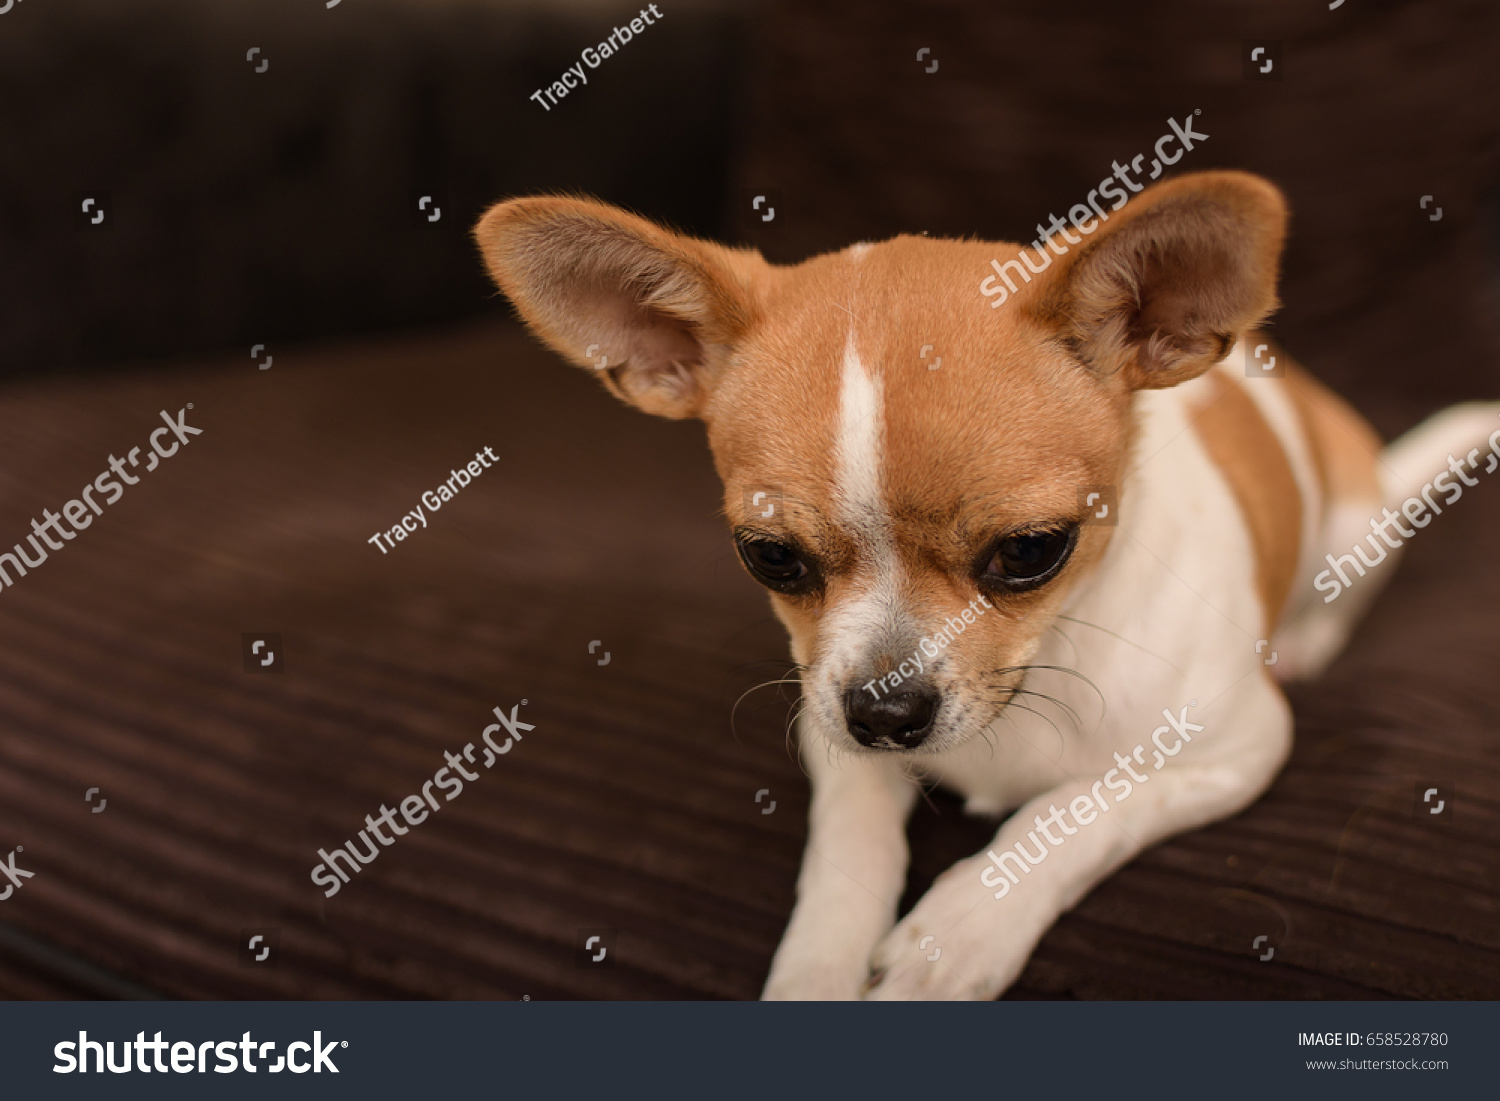 Cute Tan White Chihuahua Puppy Dog Stock Photo Edit Now 658528780